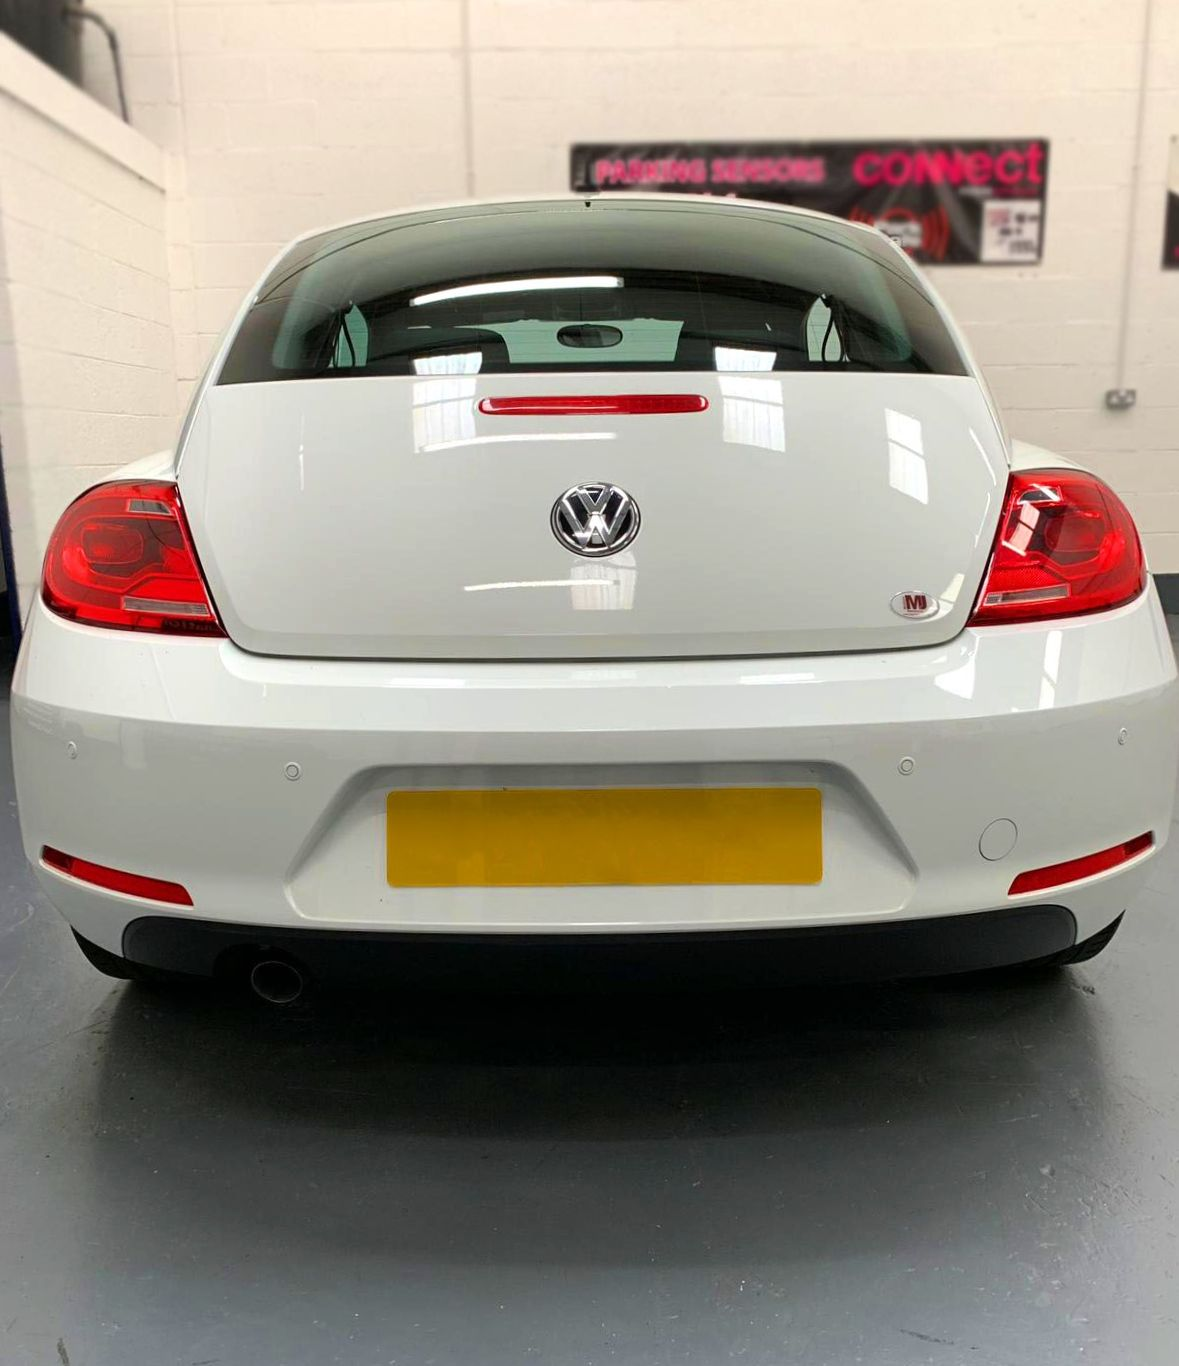 VW Beetle - New car just in to get sensors fitted